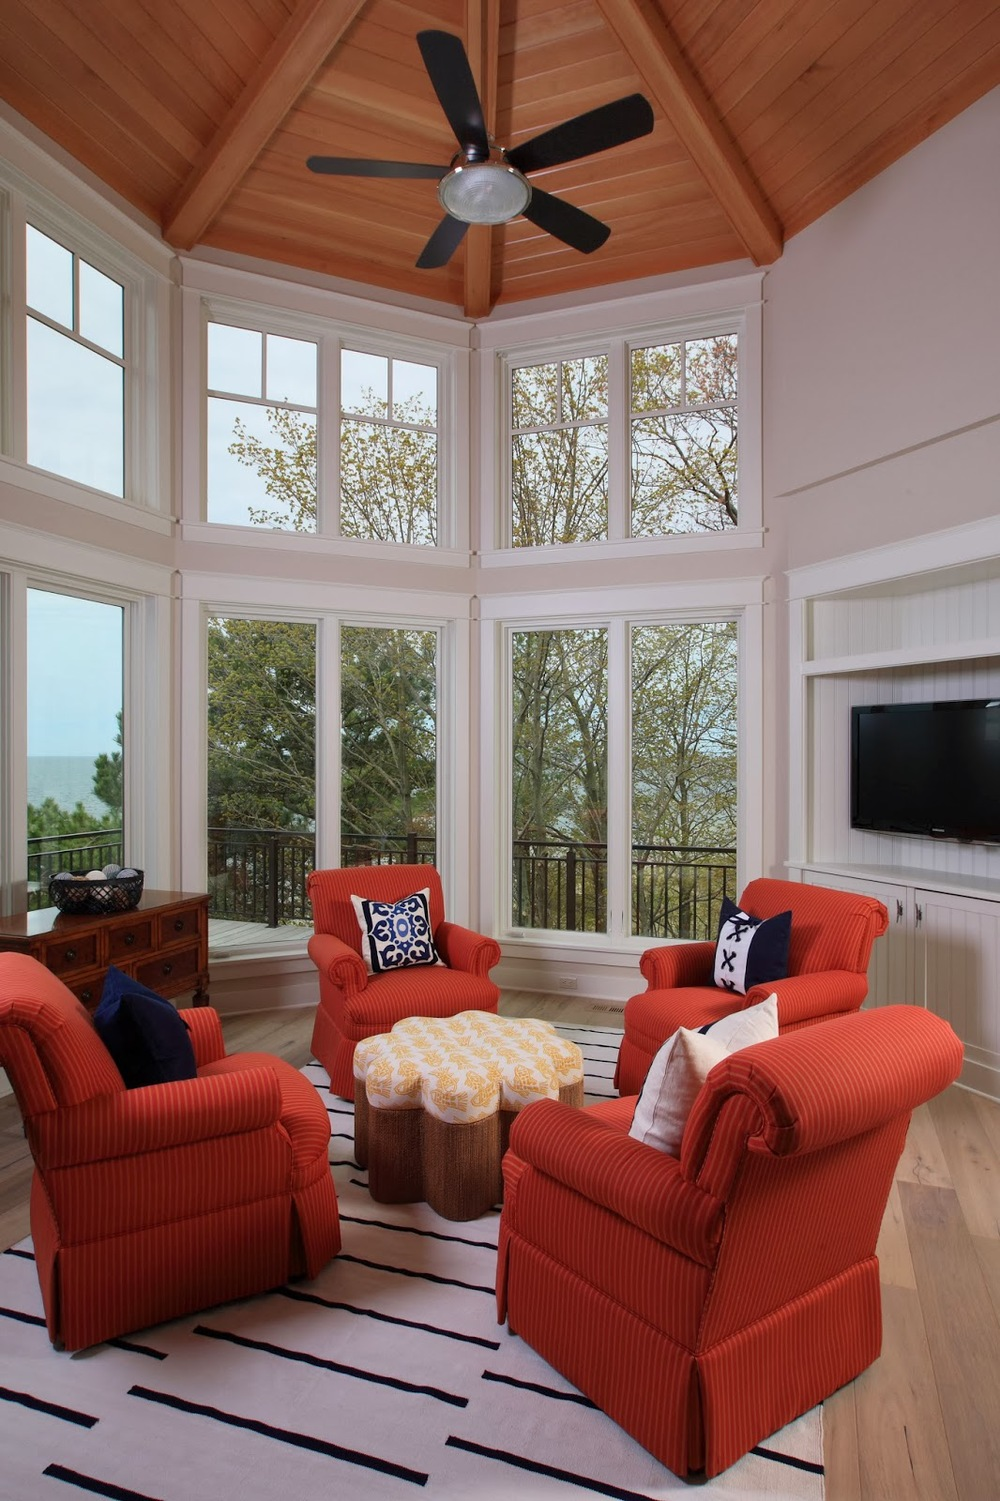 Sunroom_Design+Home+1001.jpg